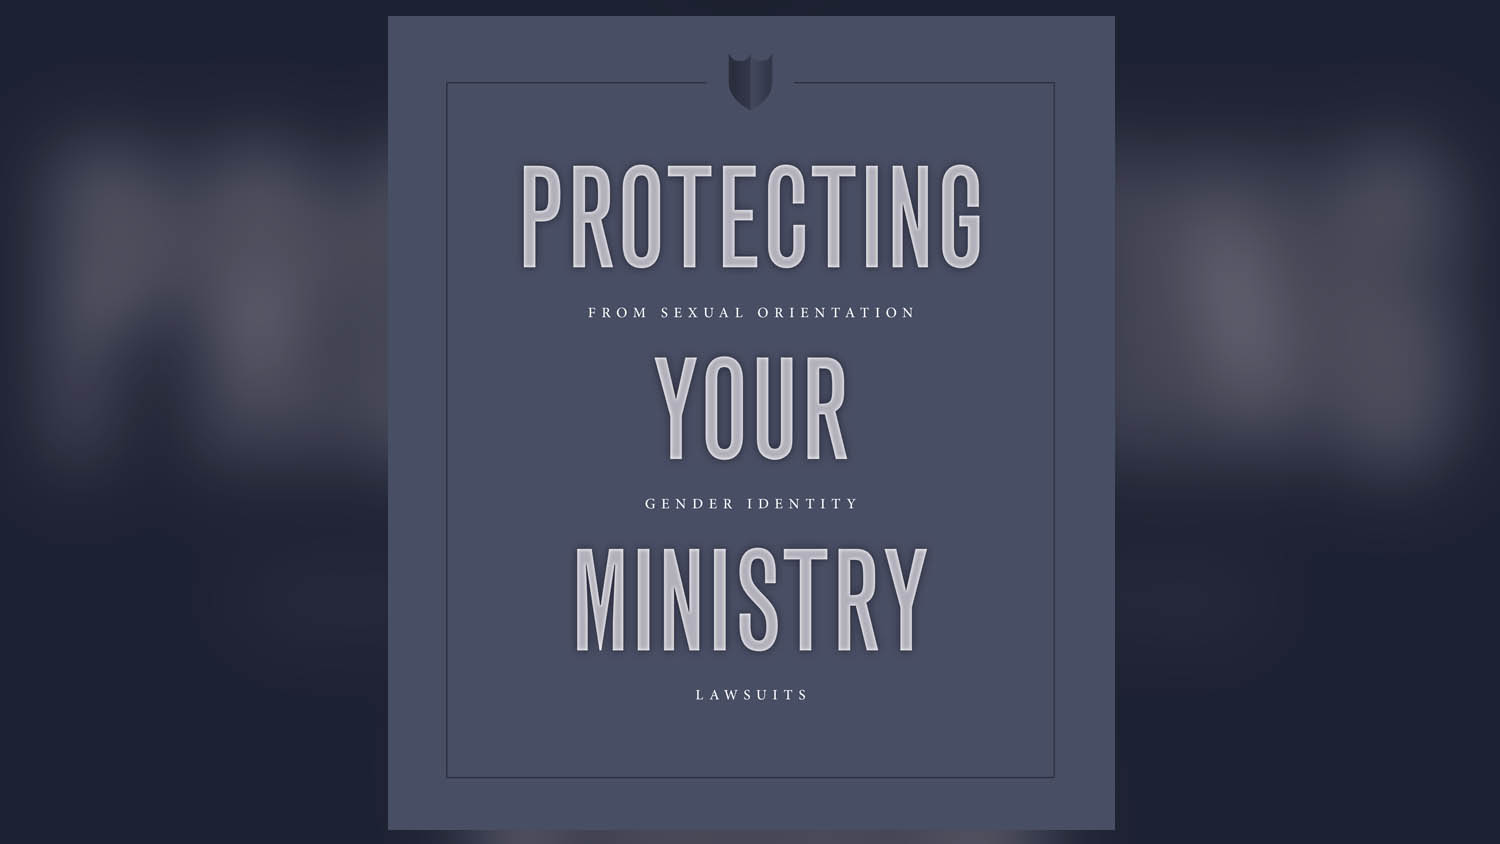 img-protecting-your-ministryaff3670e99416911b39eff000093119c